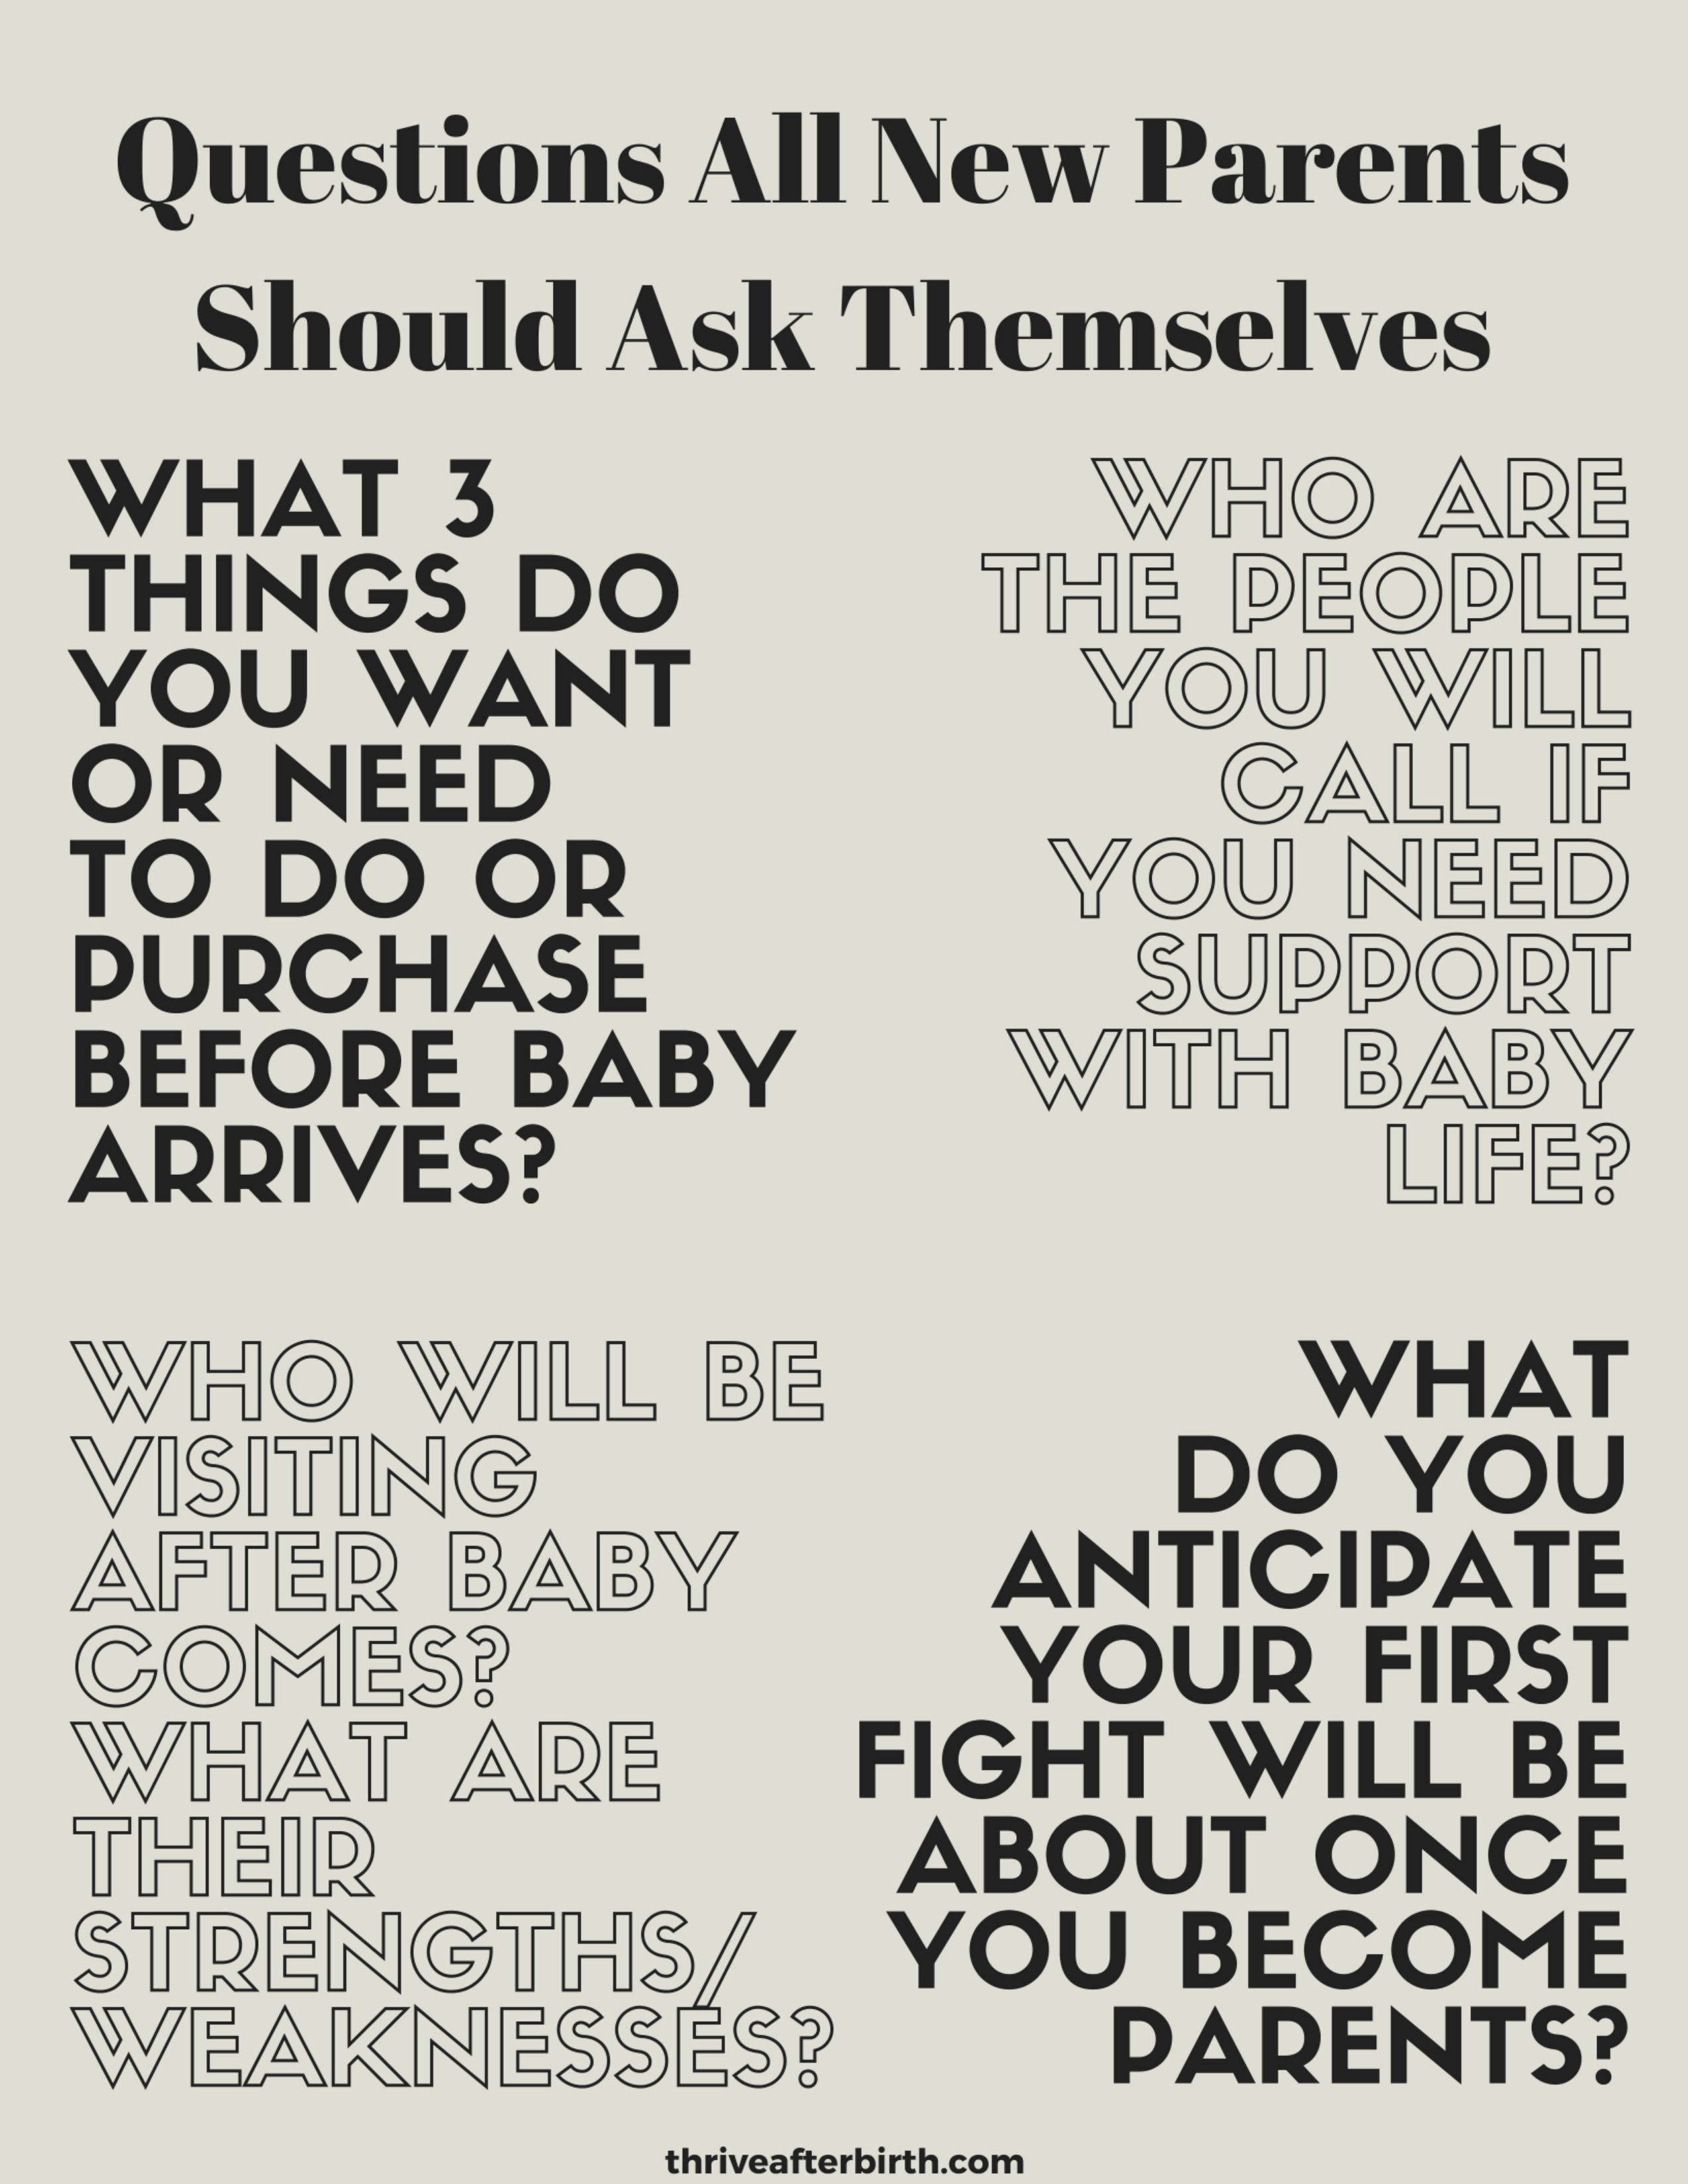 Questions All New Parents Should Ask Themselves